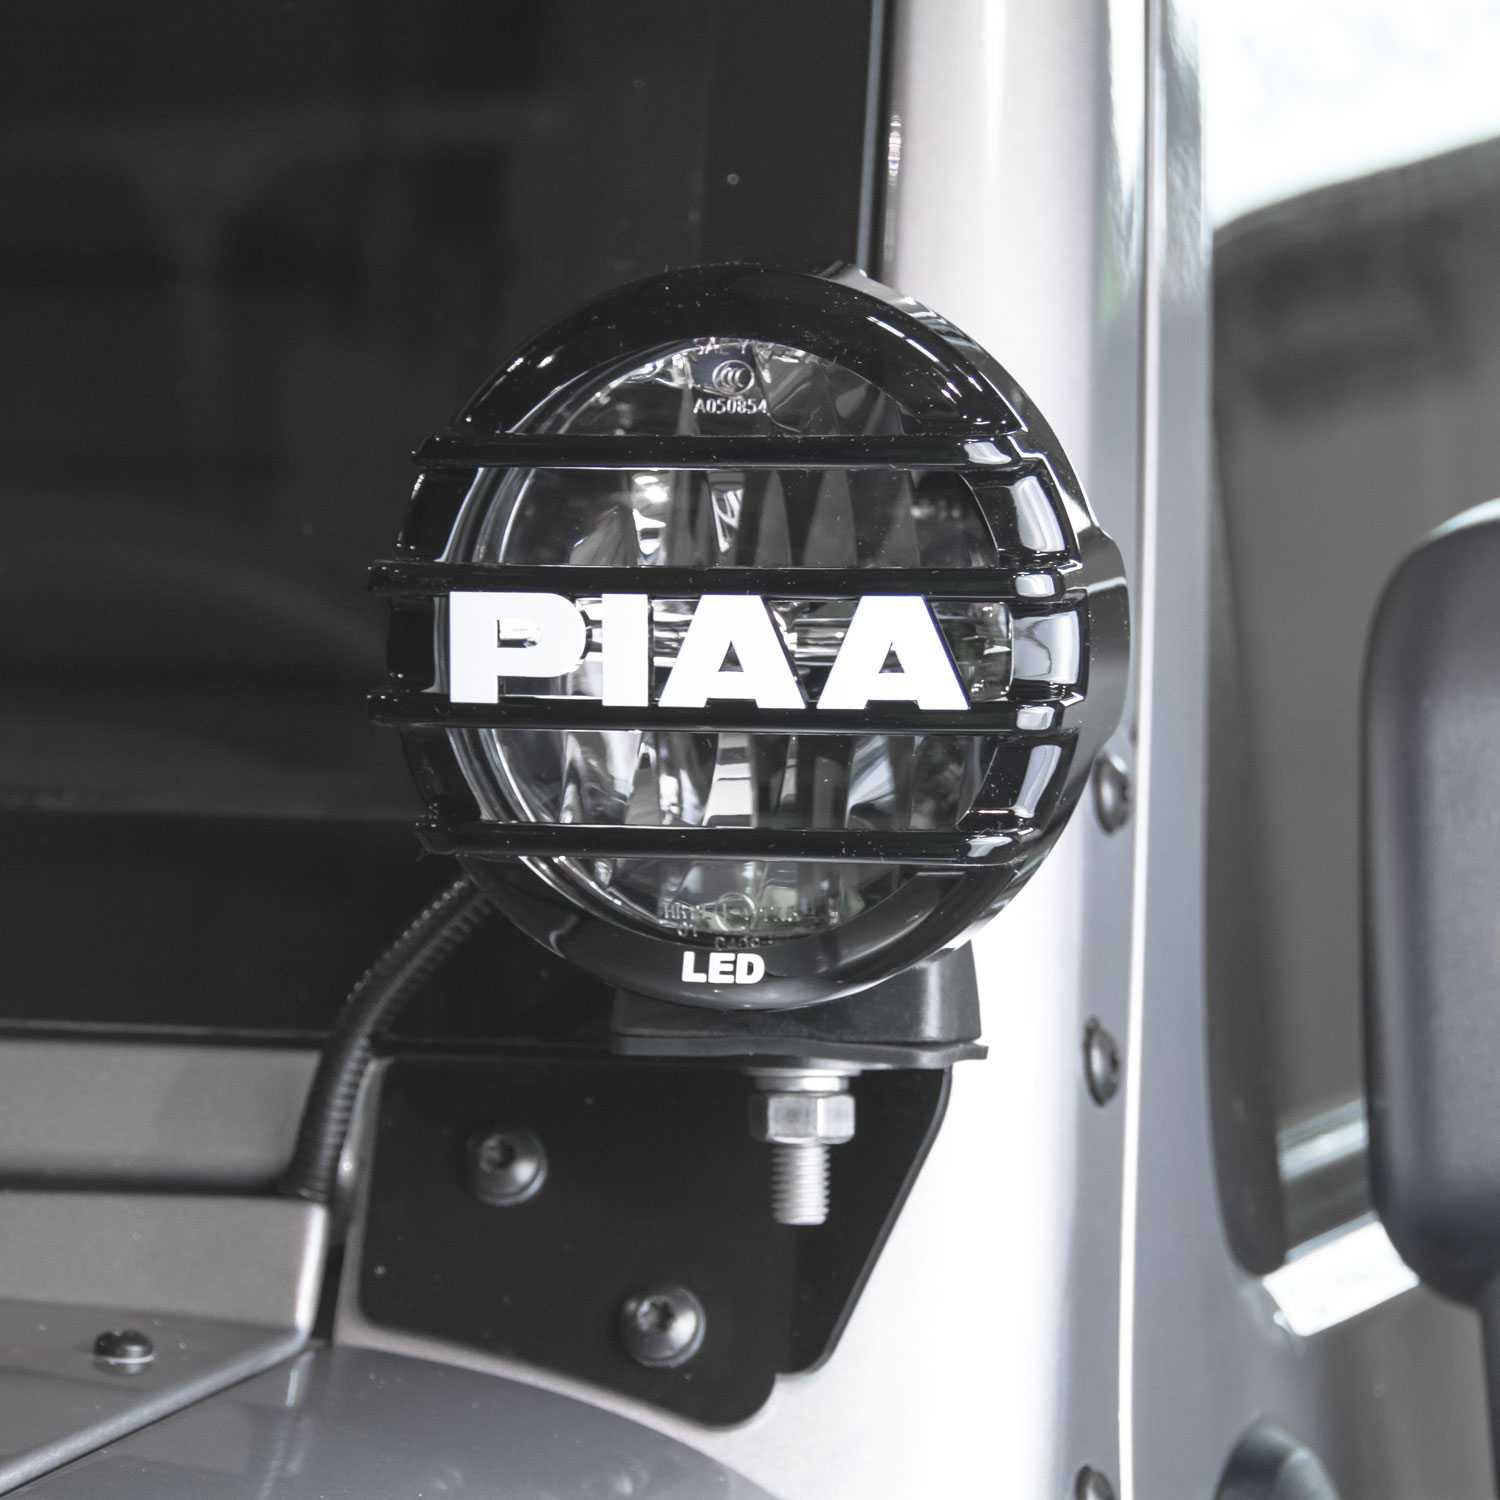 "PIAA Jeep Wrangler JK 2007-2016 LP550 5"" LED Driving Light Pillar Mount Kit SAE Compliant - 05512"